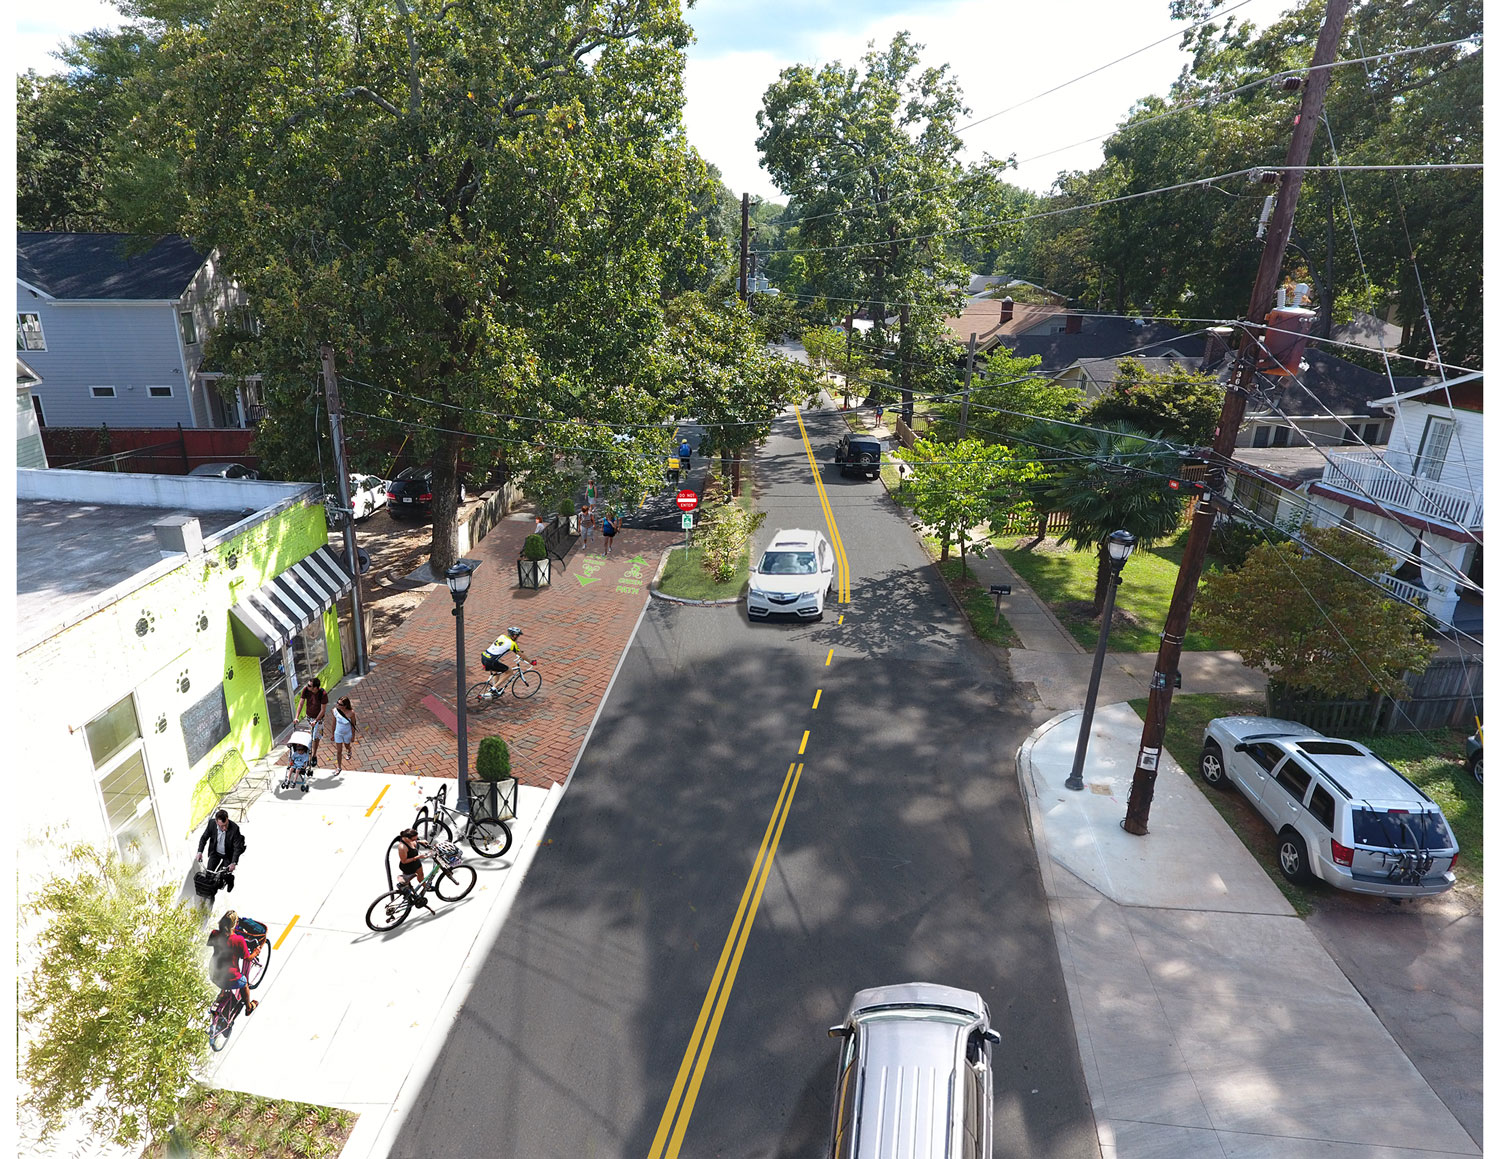 Proposed modification of northern bound lane for bicycle-pedestrian greenway signing and markings, landscape bulb-outs to restrict entrances to only local traffic and on-street parking.